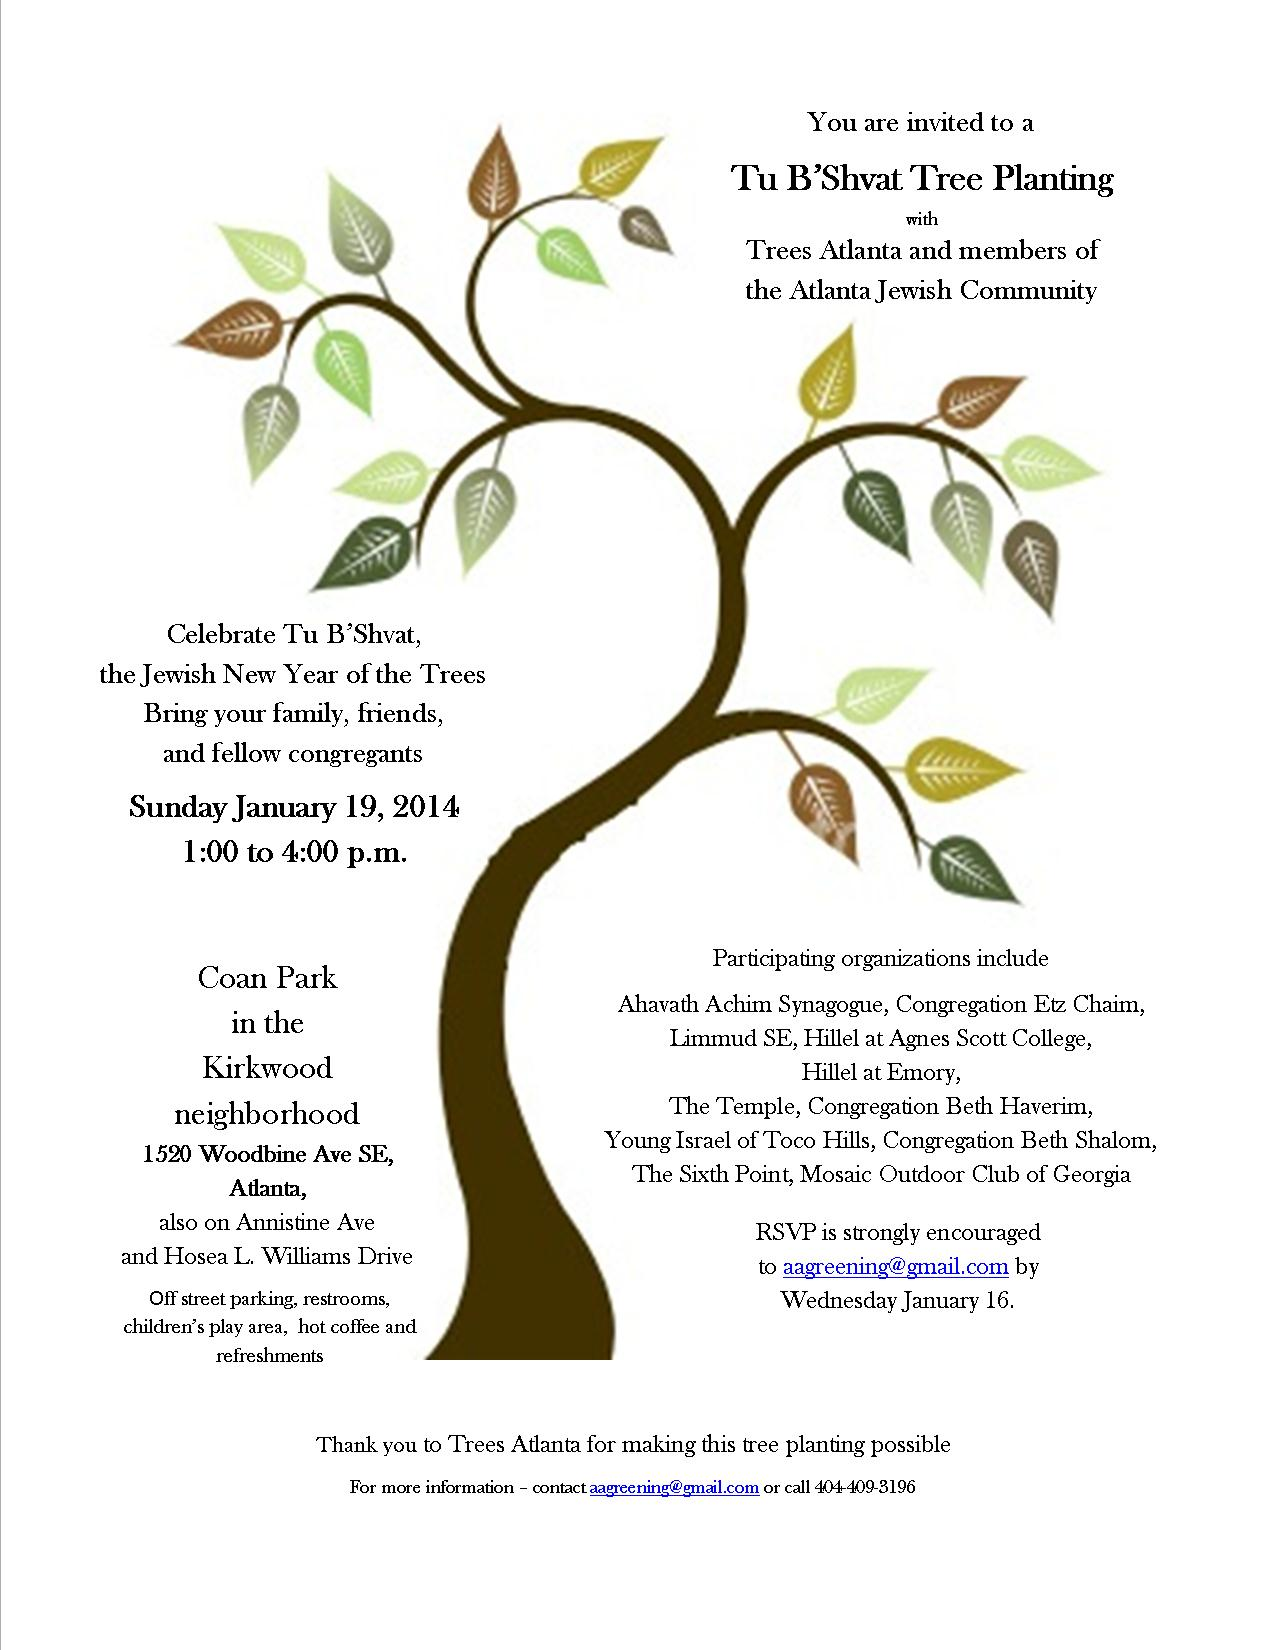 Tu B'Shevat Tree Planting - Event - Young Israel of Toco Hills